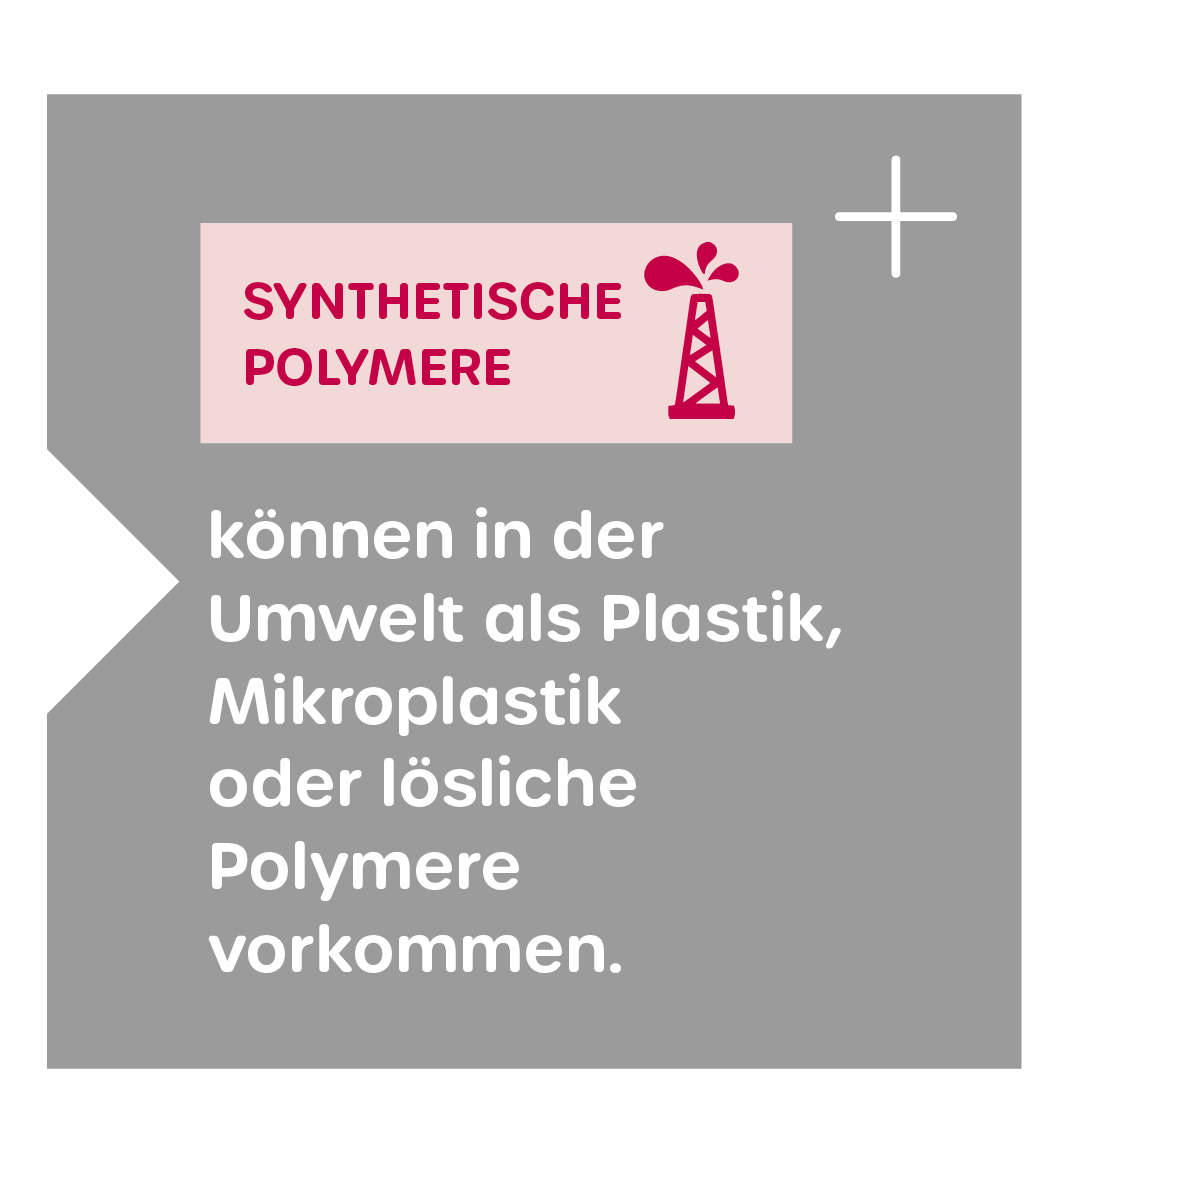 Synthetische Polymere